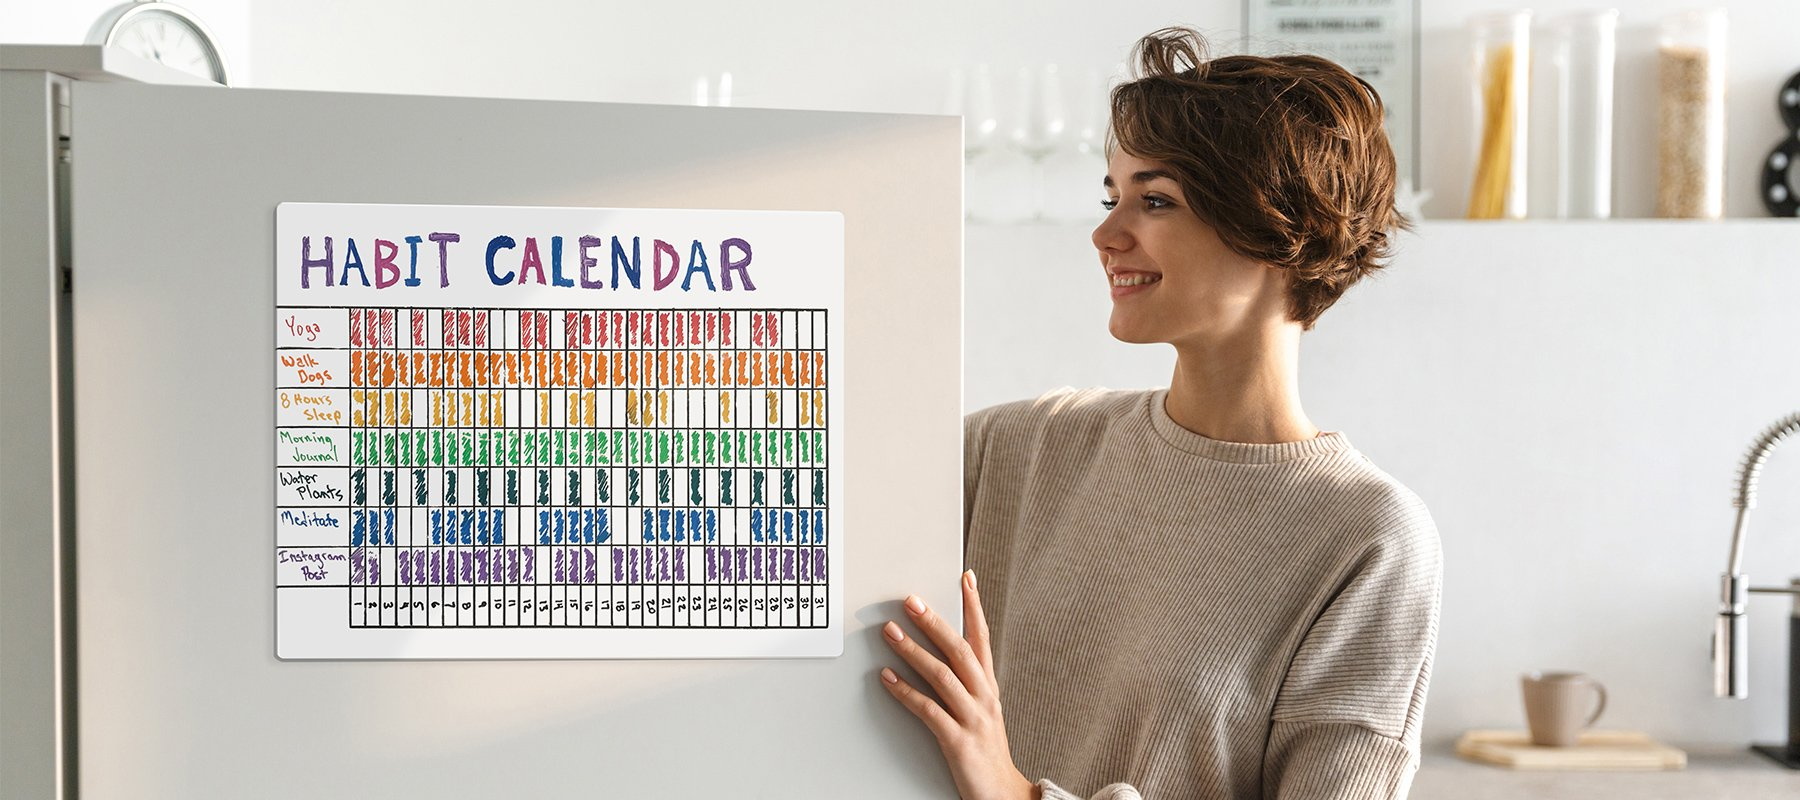 Stay Focused on Your New Routine with a Visual Habit Calendar This Year